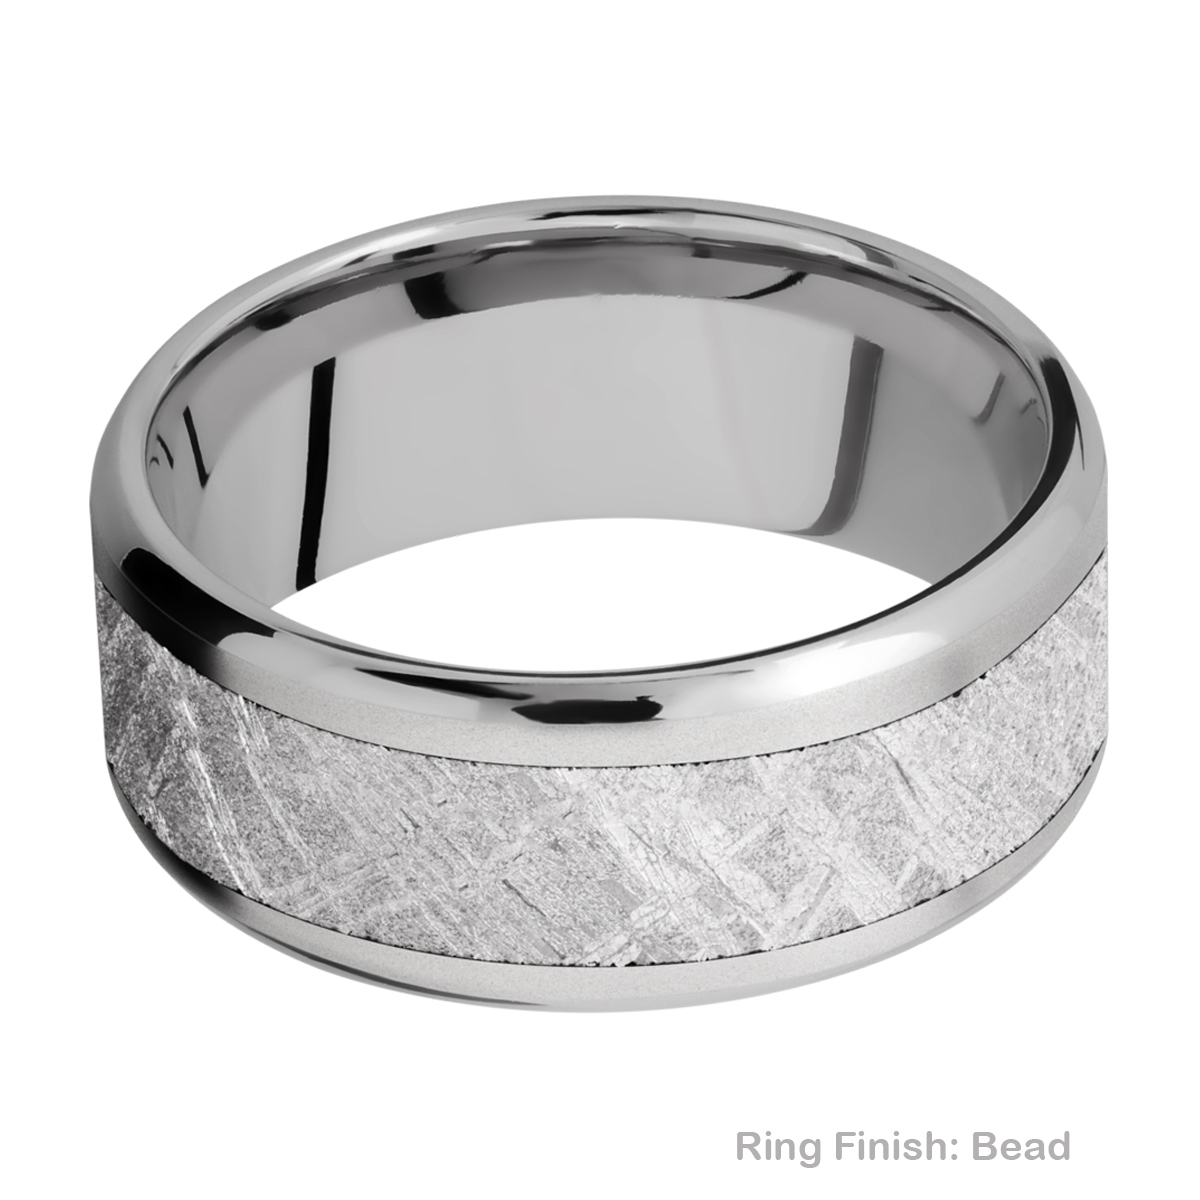 Lashbrook 9B16(NS)/METEORITE Titanium Wedding Ring or Band Alternative View 2